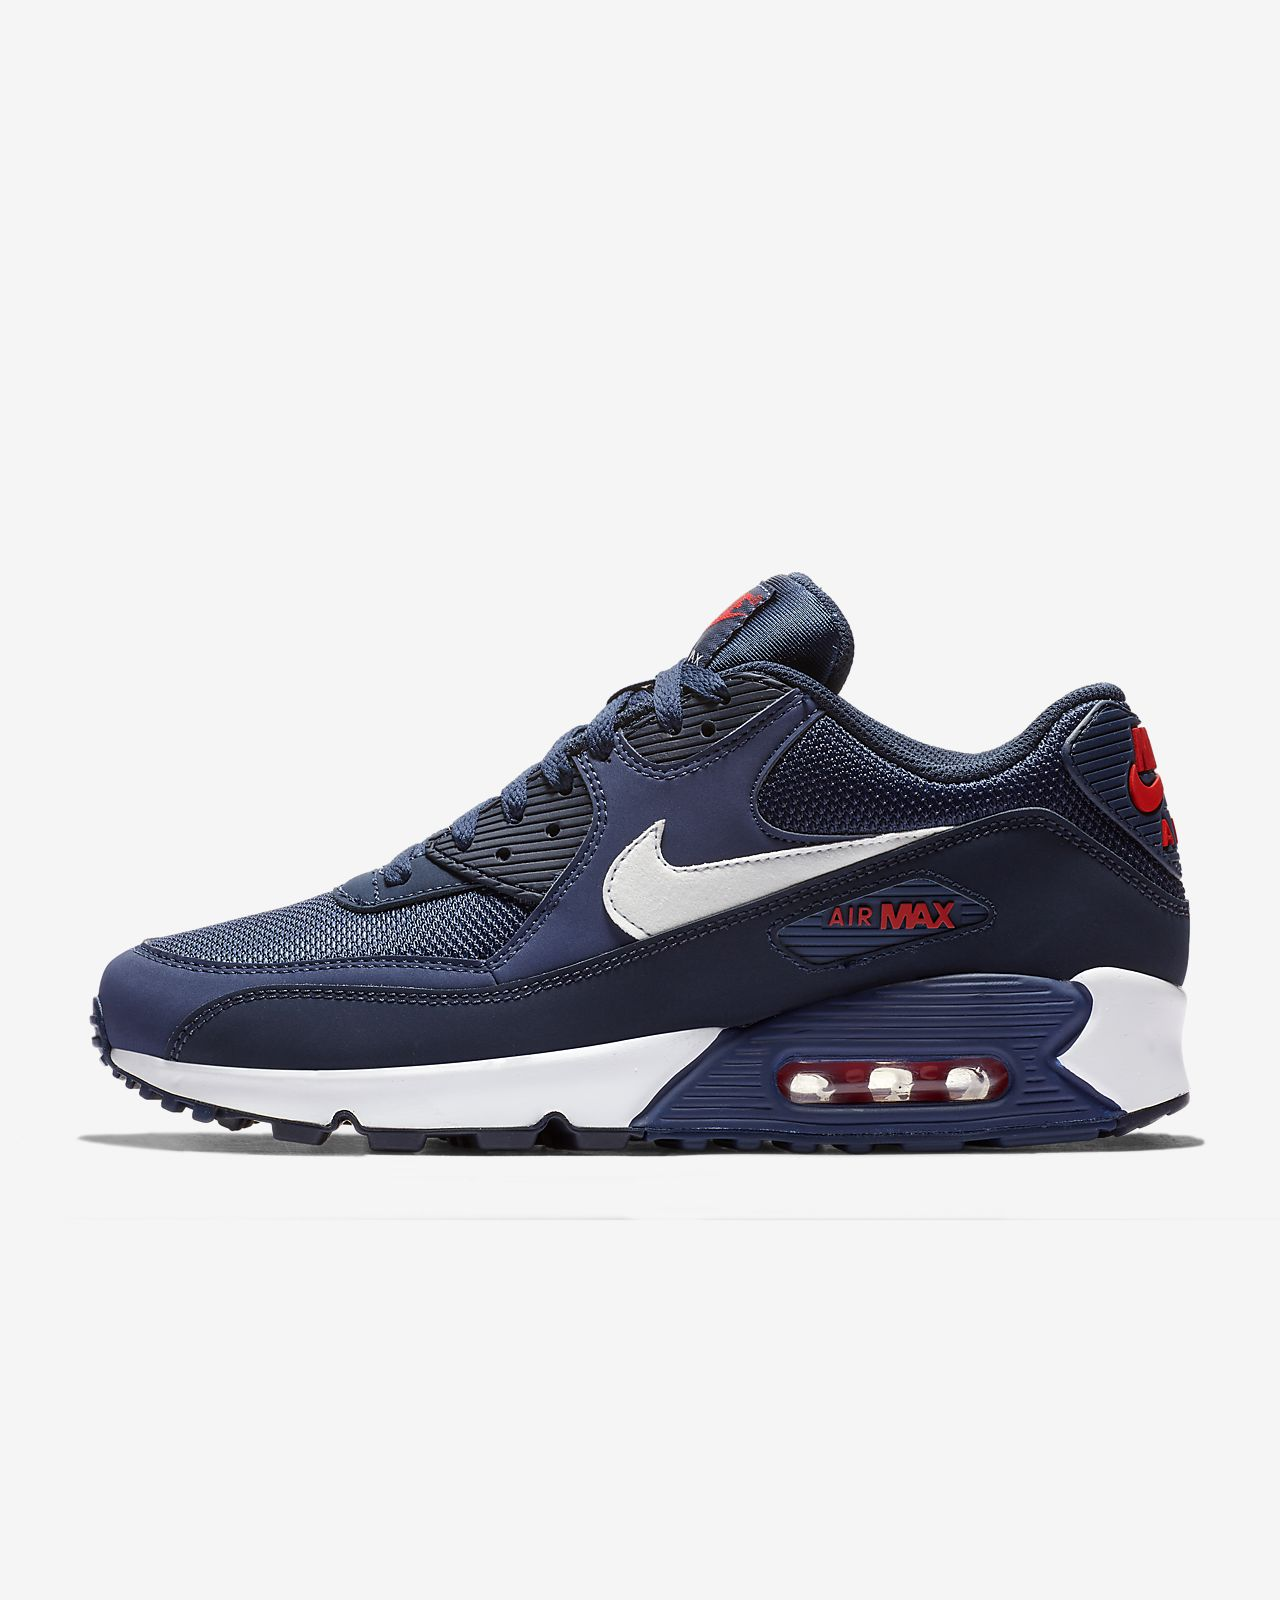 separation shoes b3165 f4512 ... Nike Air Max 90 Essential Men s Shoe